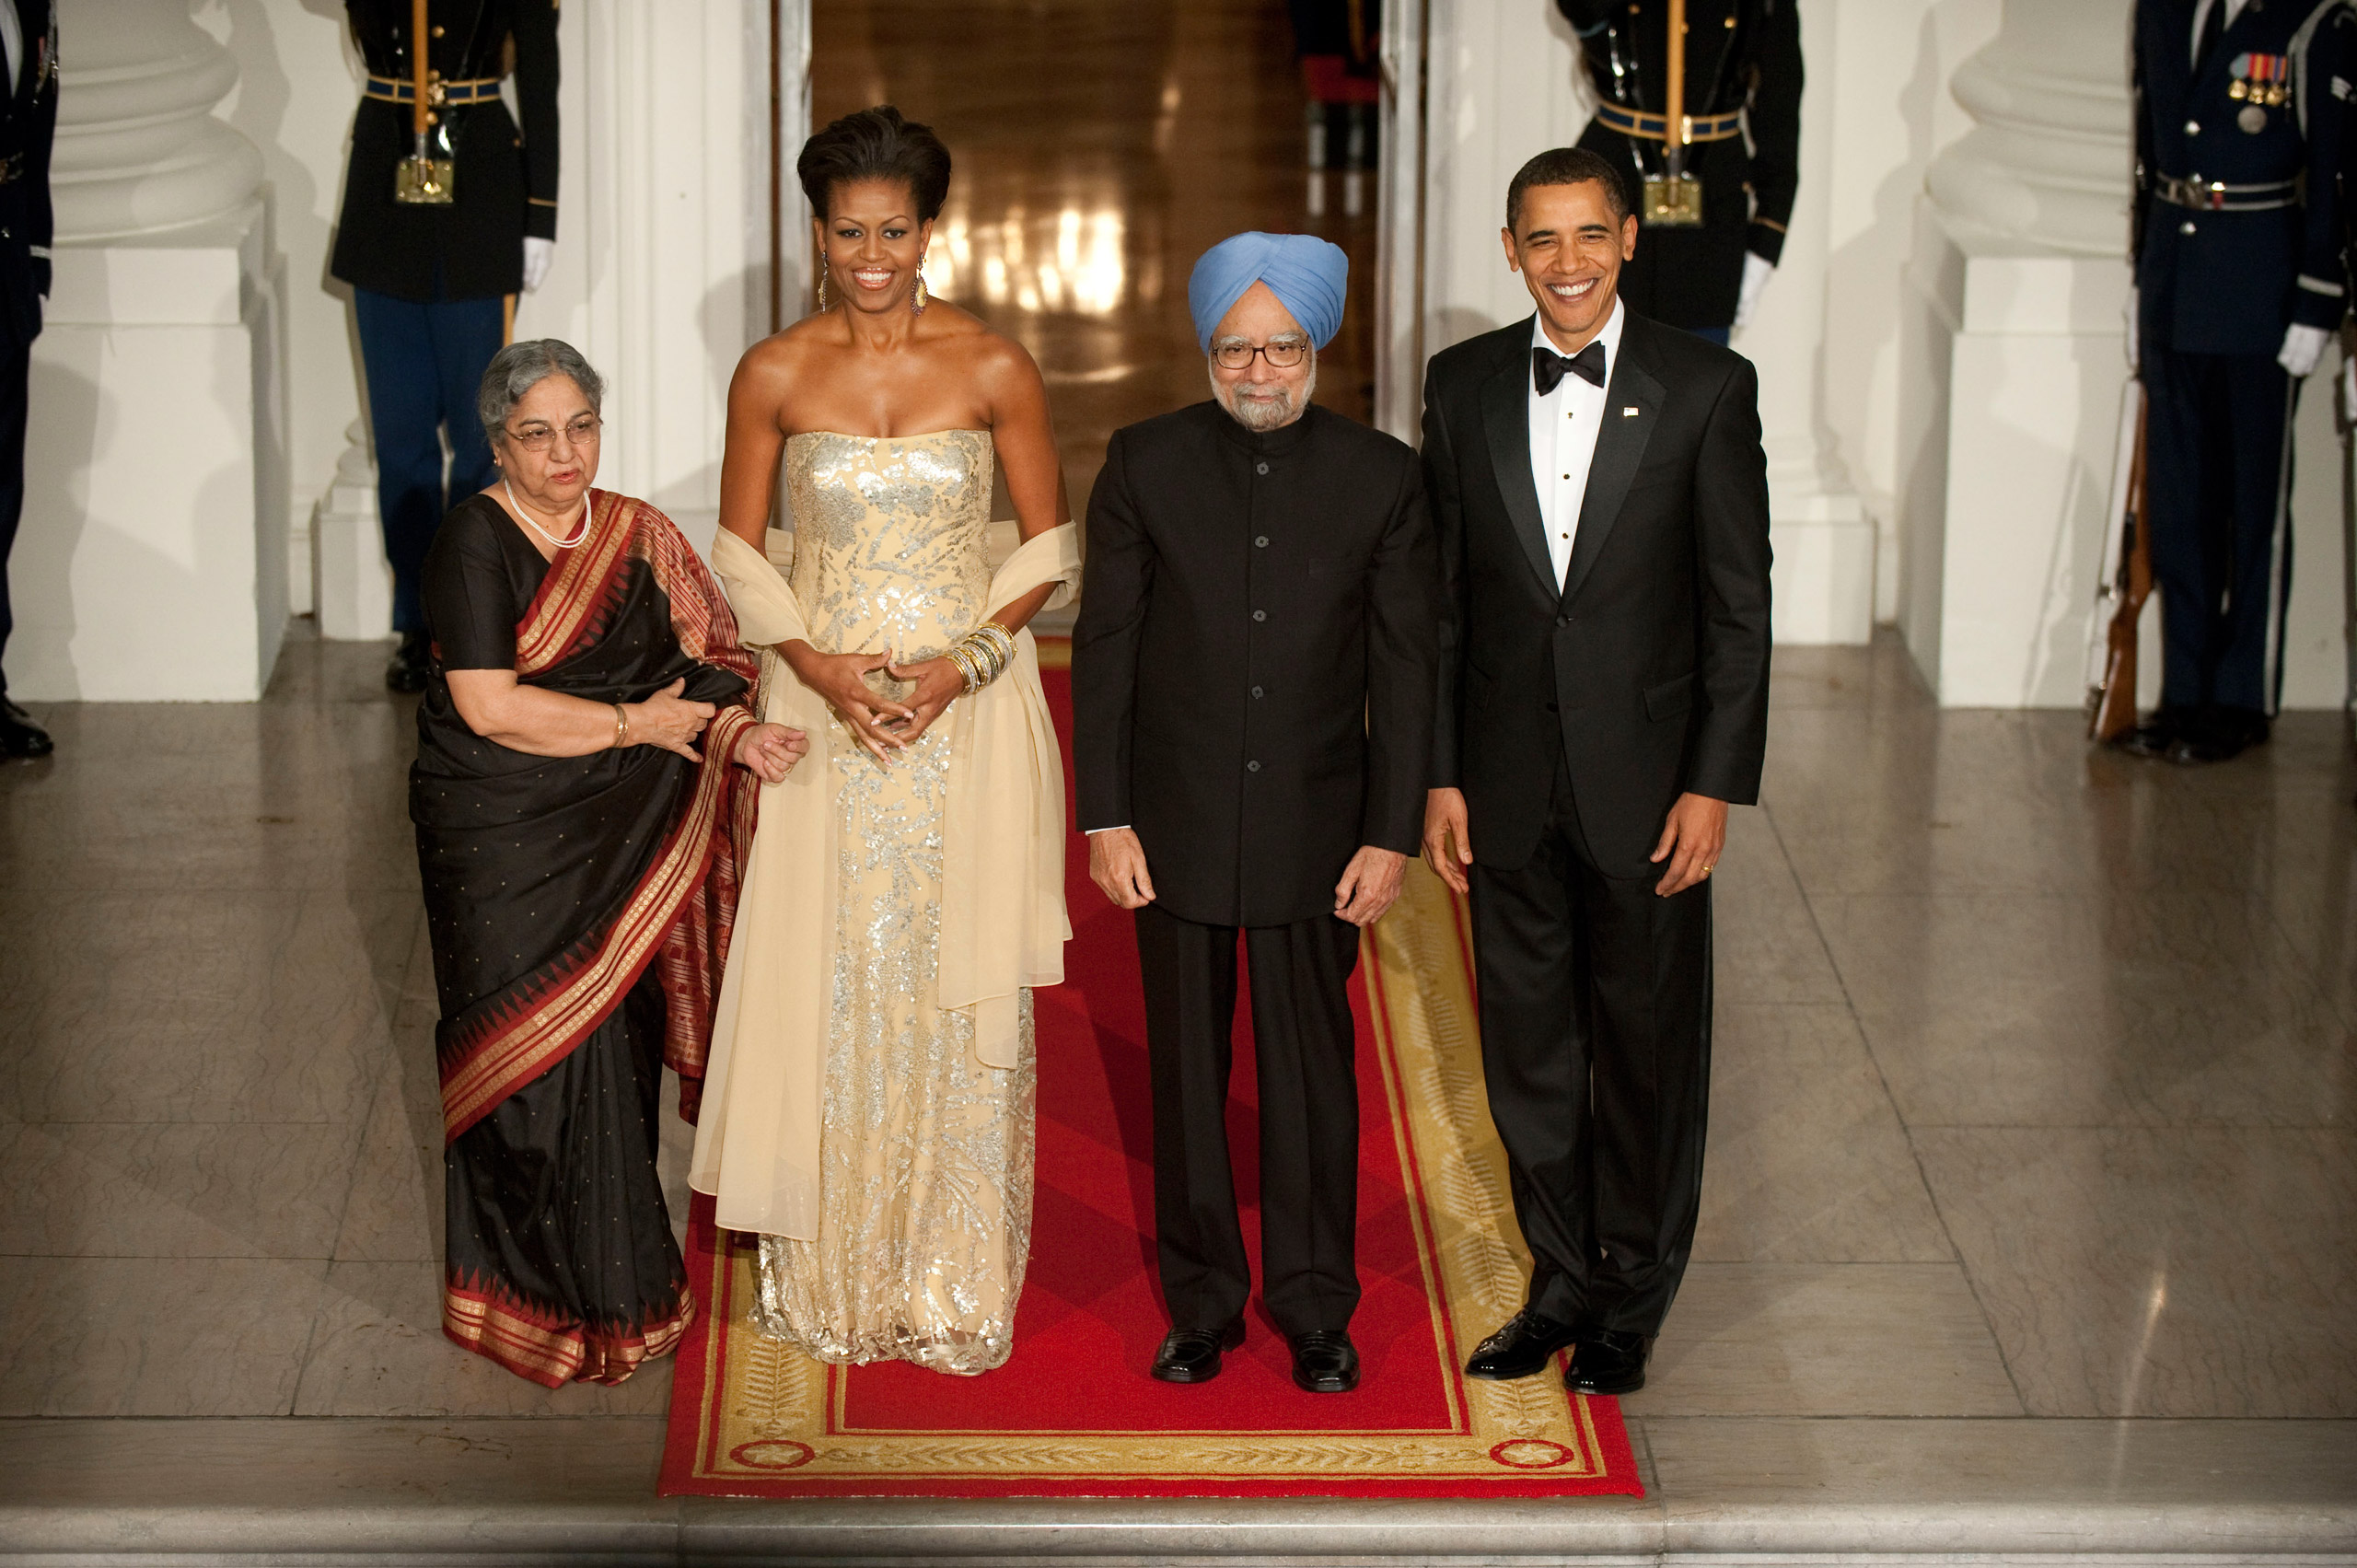 President Barack Obama and First Lady Michelle Obama welcome Indian Prime Minister Dr. Manmohan Singh  and Mrs. Gursharan Kaur to their first White House State Dinner.